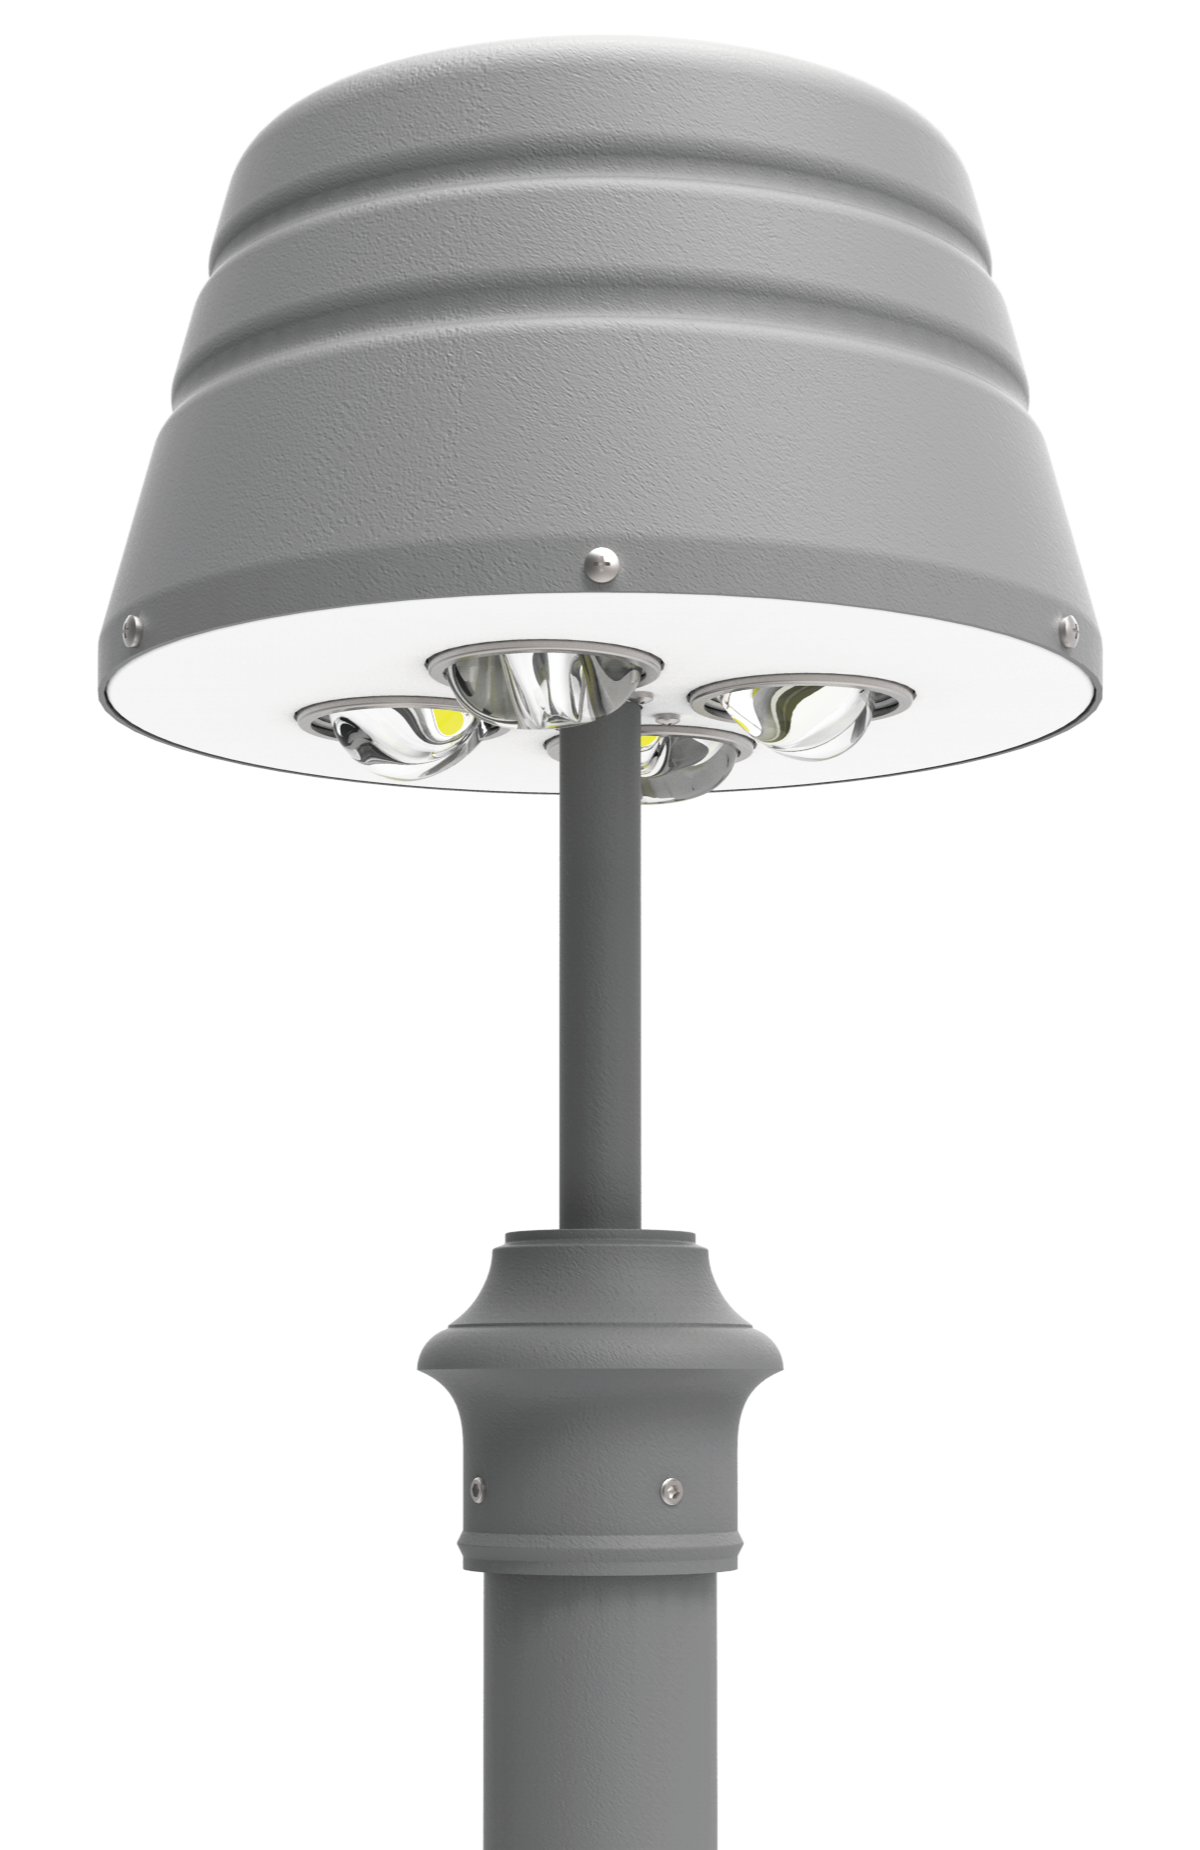 Led pt 1201 series led post top light fixtures outdoor custom finished colors mozeypictures Choice Image